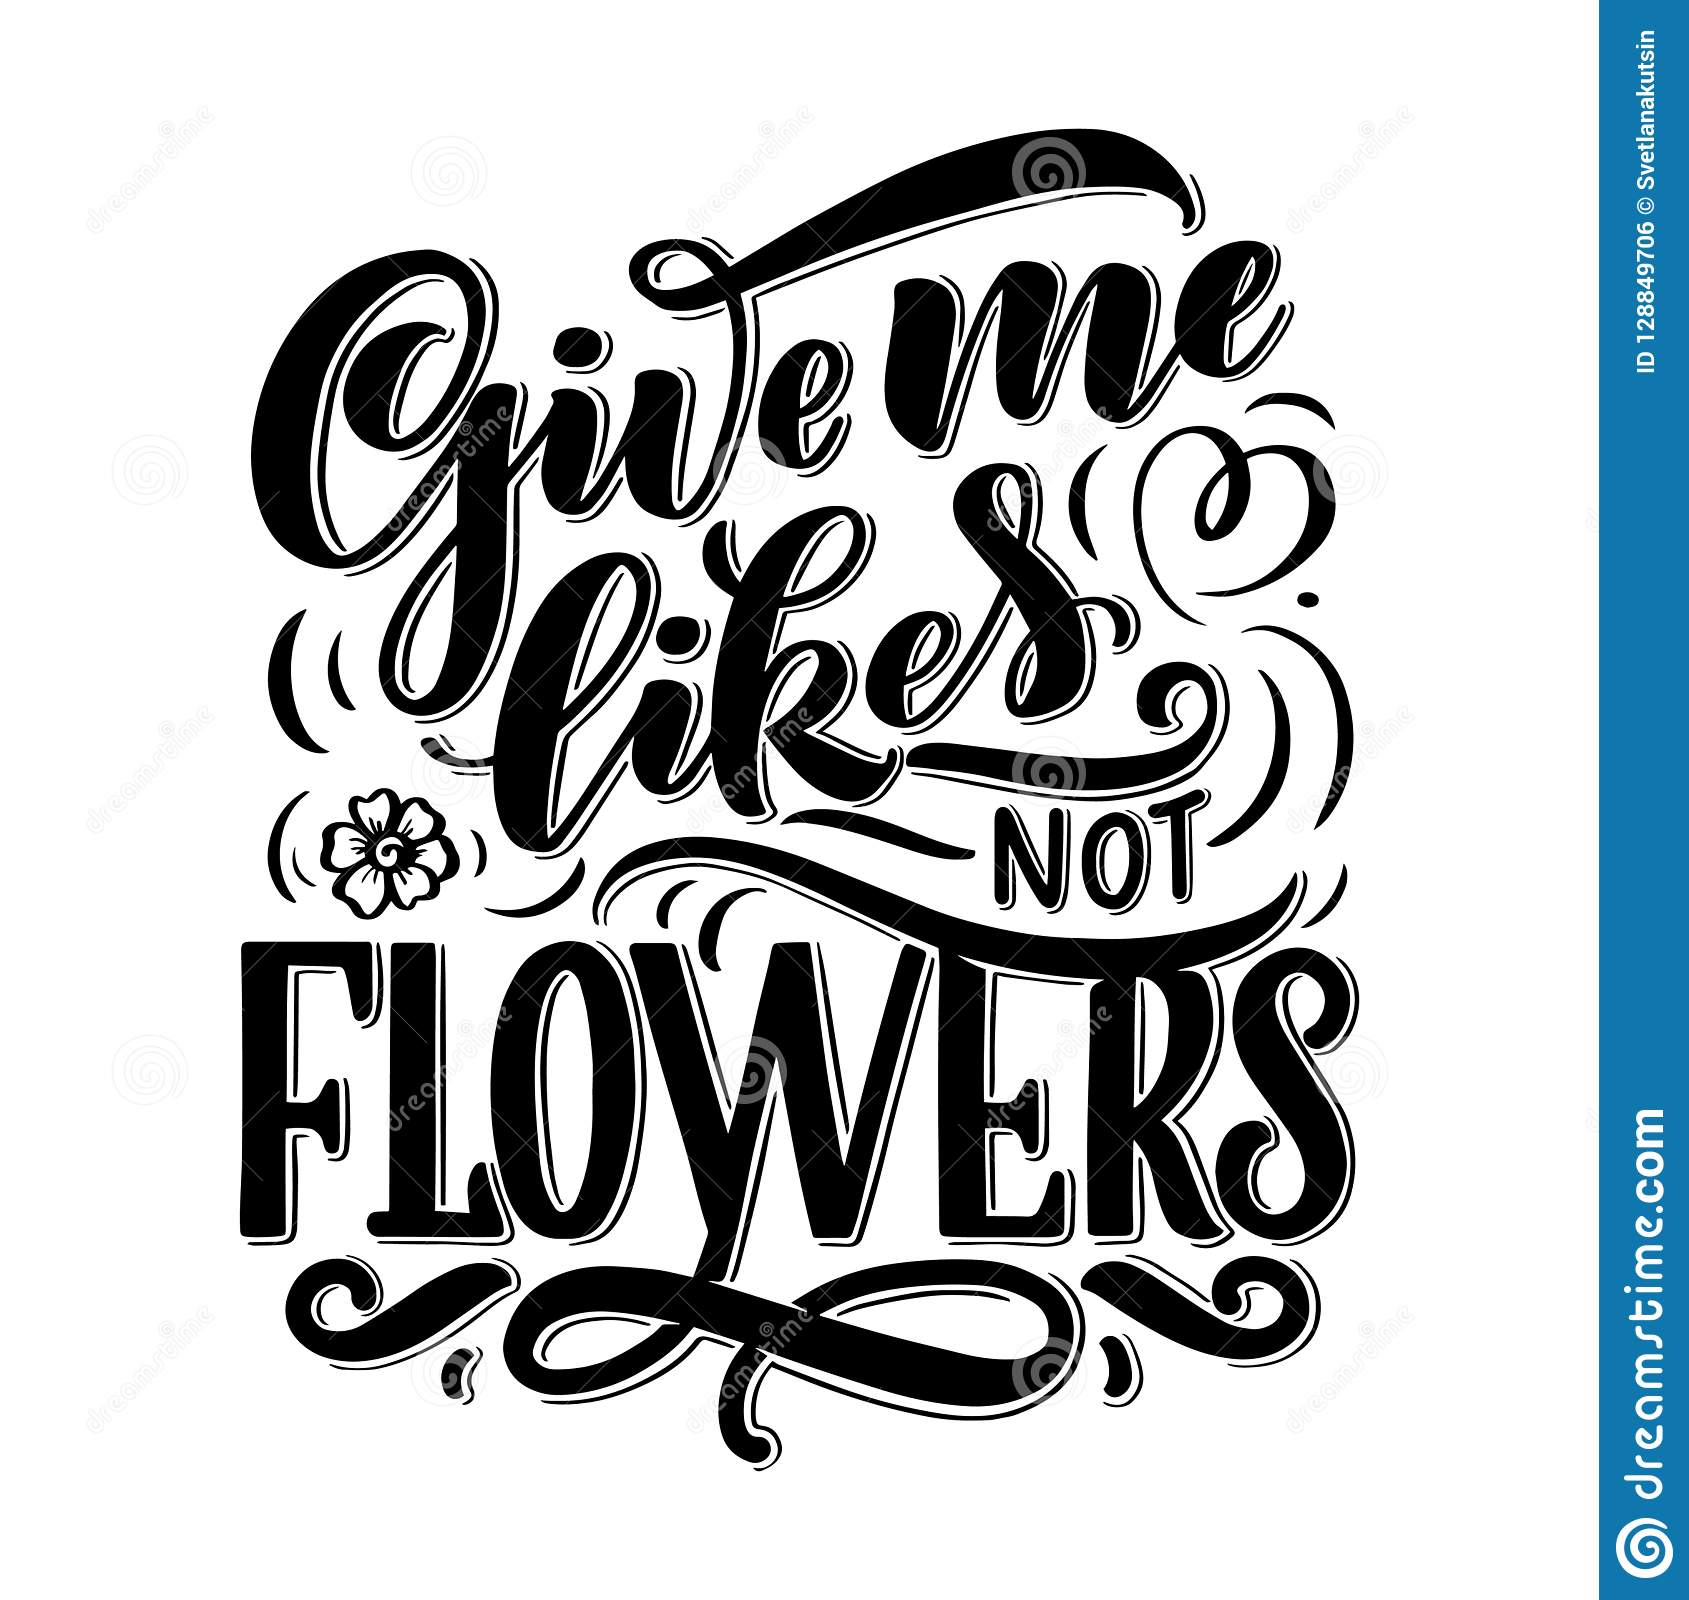 85bec886b Lettering quote about flowers, illustration made in vector. Postcard,  invitation, shop and t-shirt design with handdrawn composition.